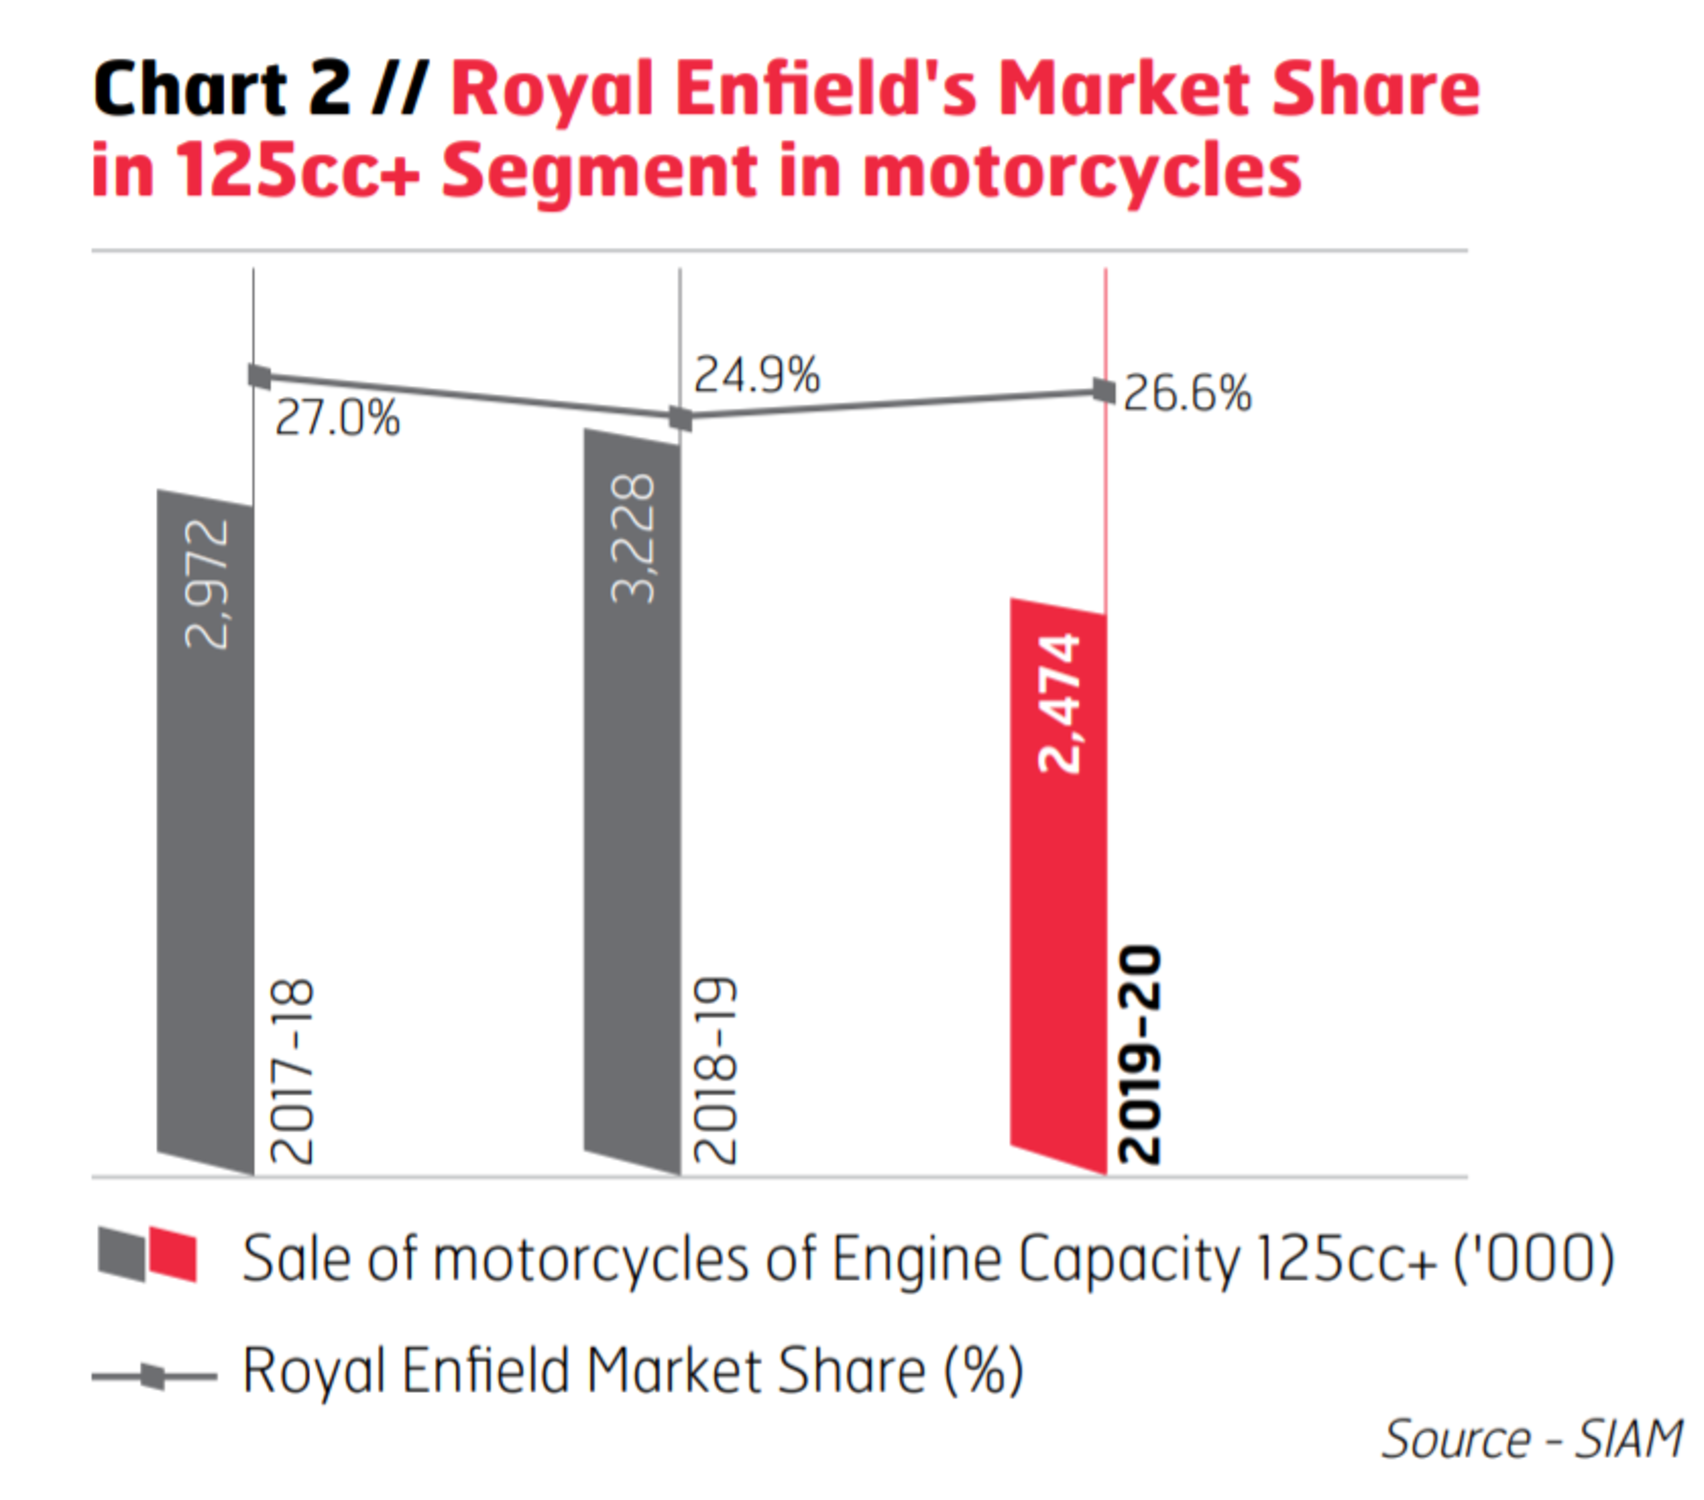 Royal Enfield's Market Share in 125cc segment